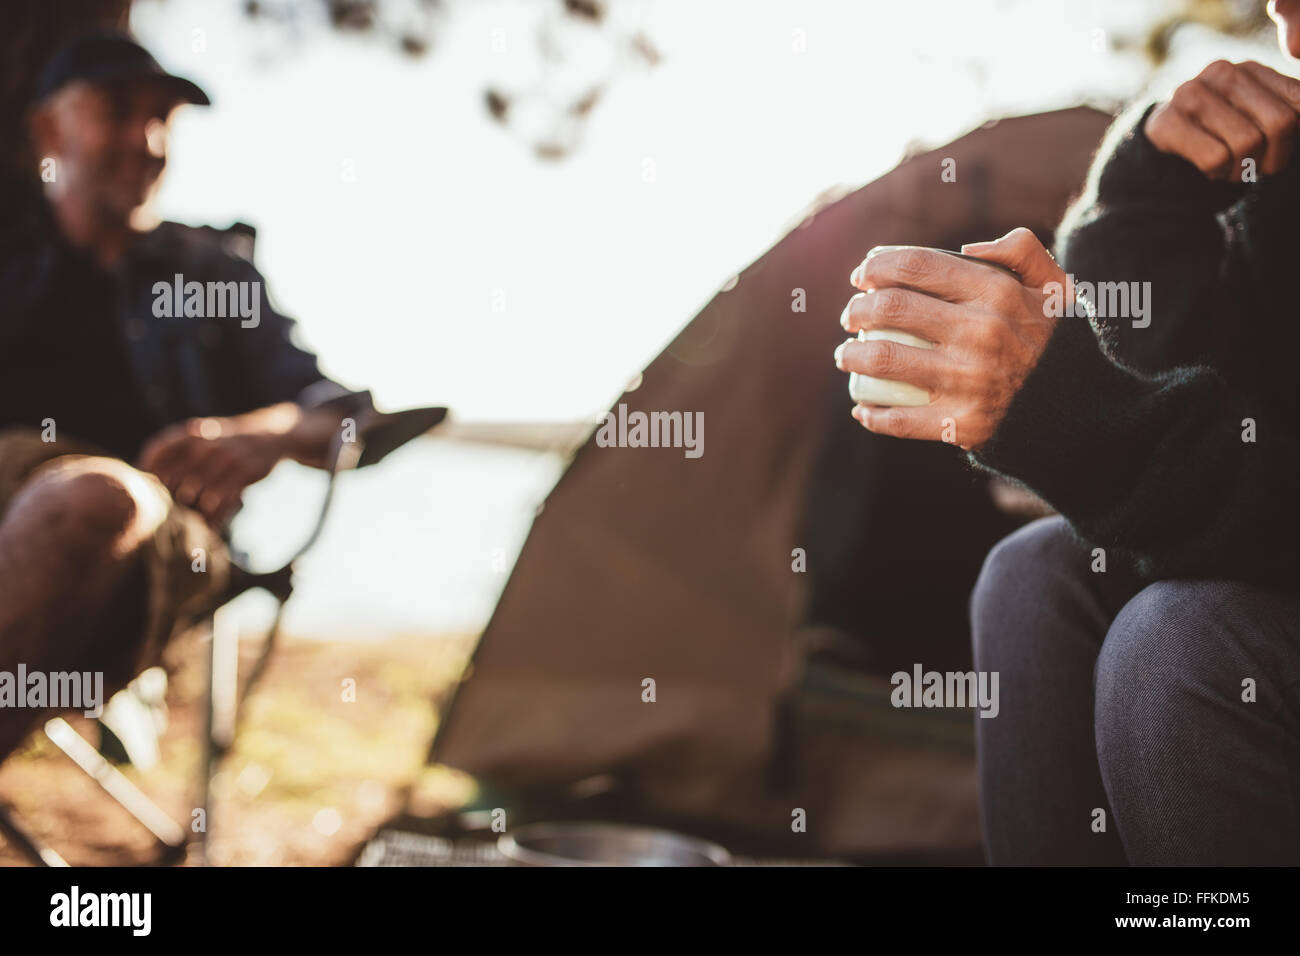 Close up portrait of a hand of a woman holding coffee at campsite with a man in background, both sitting outside Stock Photo